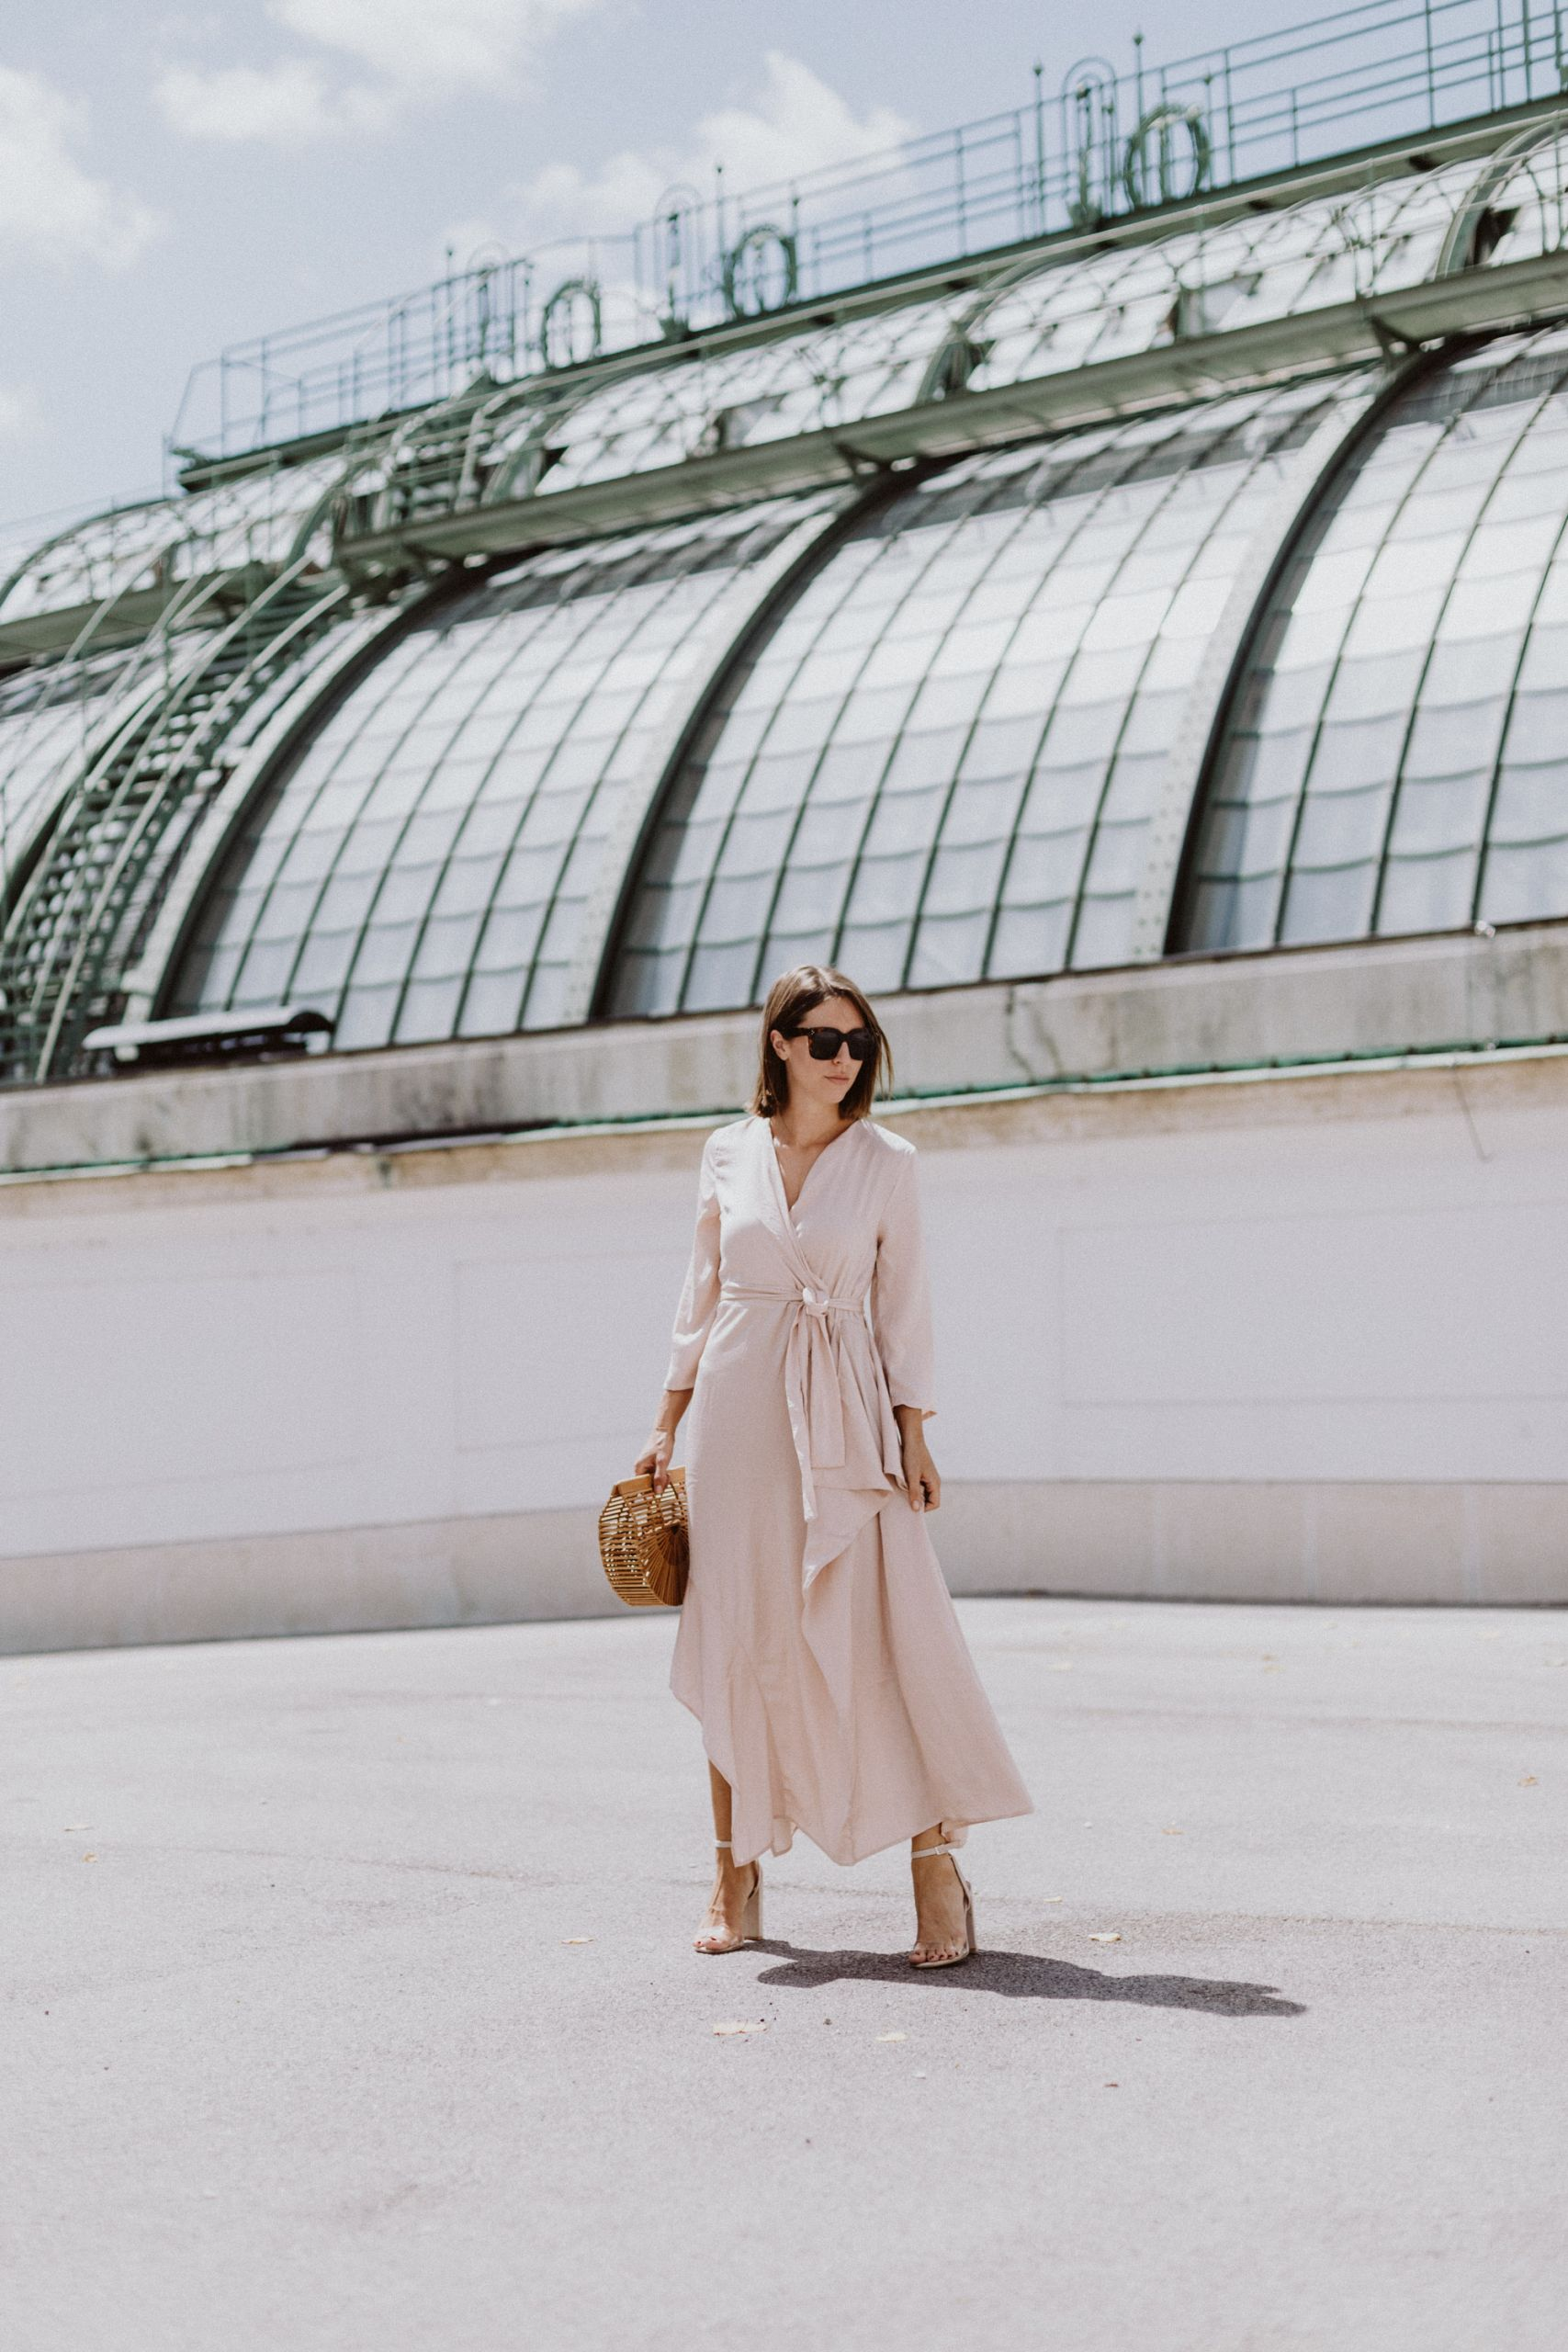 Wedding Guest Attire | The Daily Dose